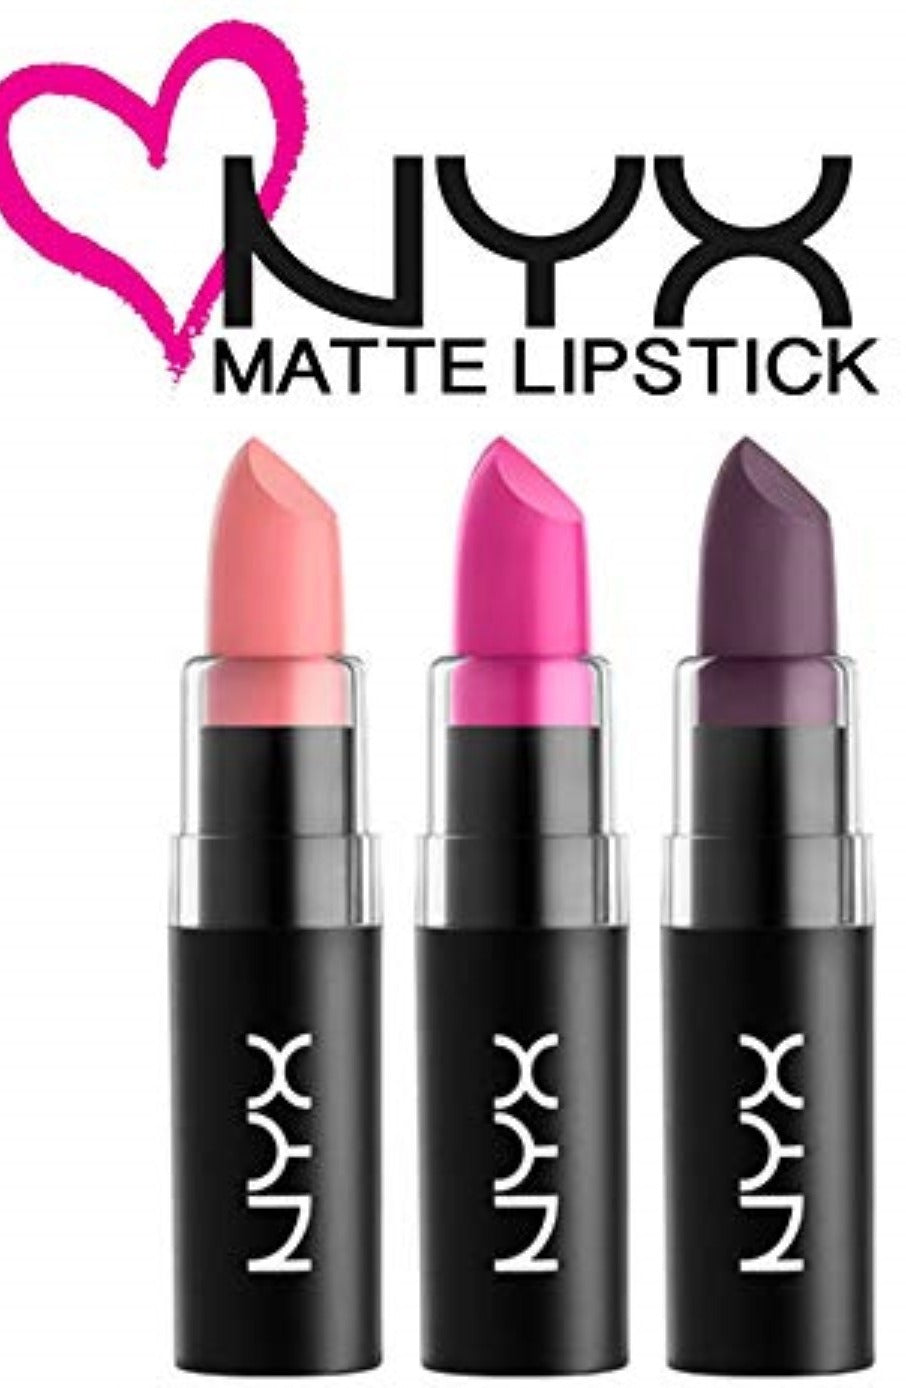 Matte Lipstick 3pc. Set